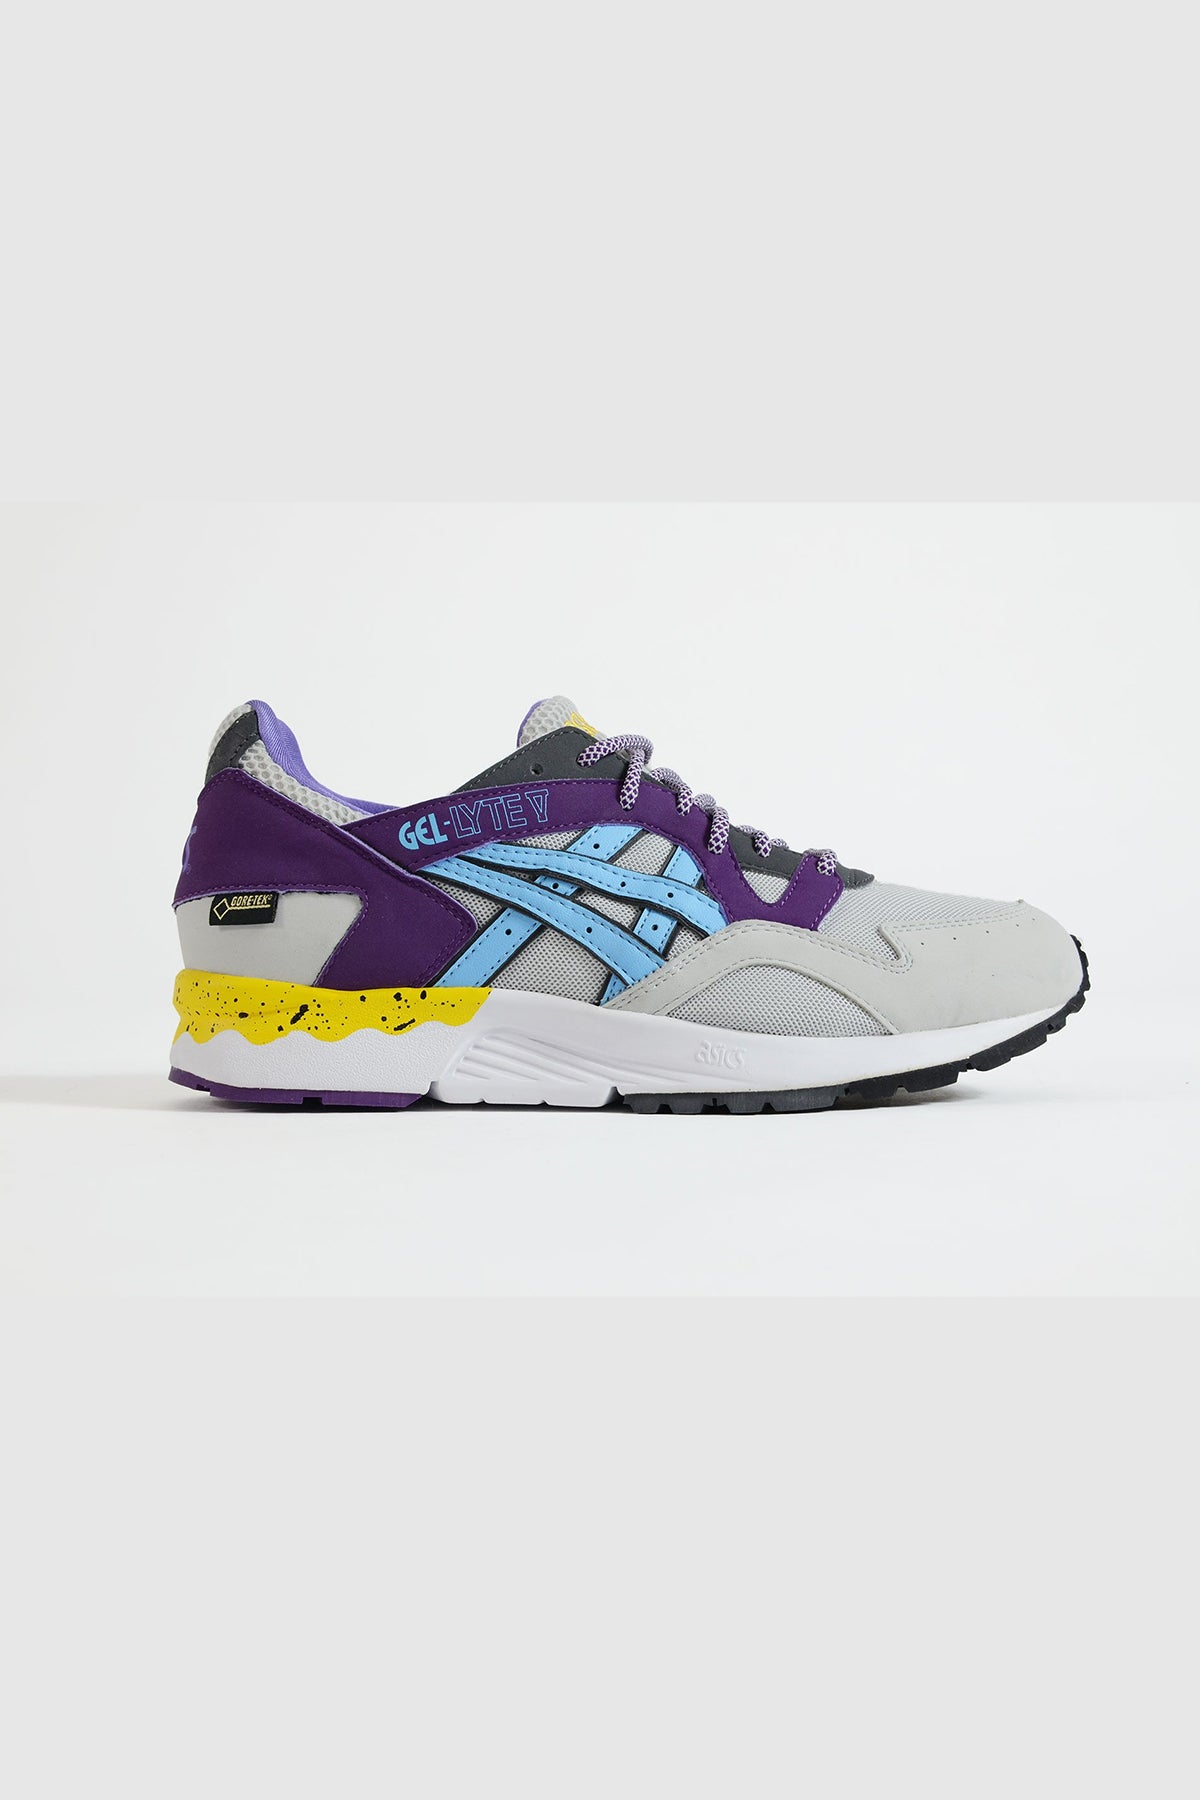 "Asics - Gel - Lyte V ""Goretex"" (Grey/ Light Blue)"